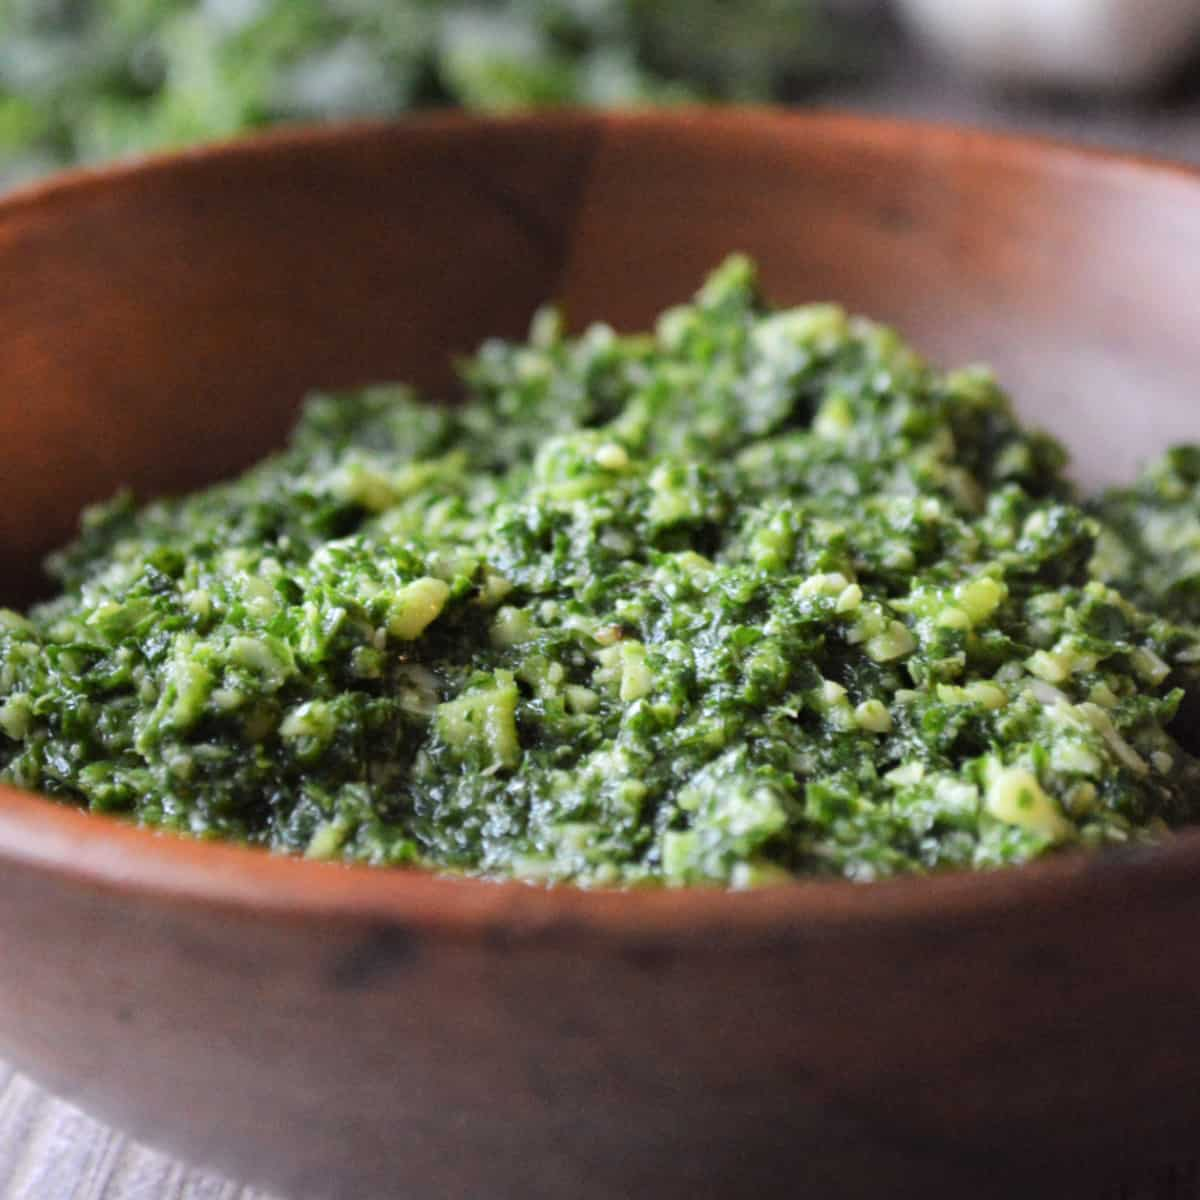 Square photo of a wooden bowl with kale pesto